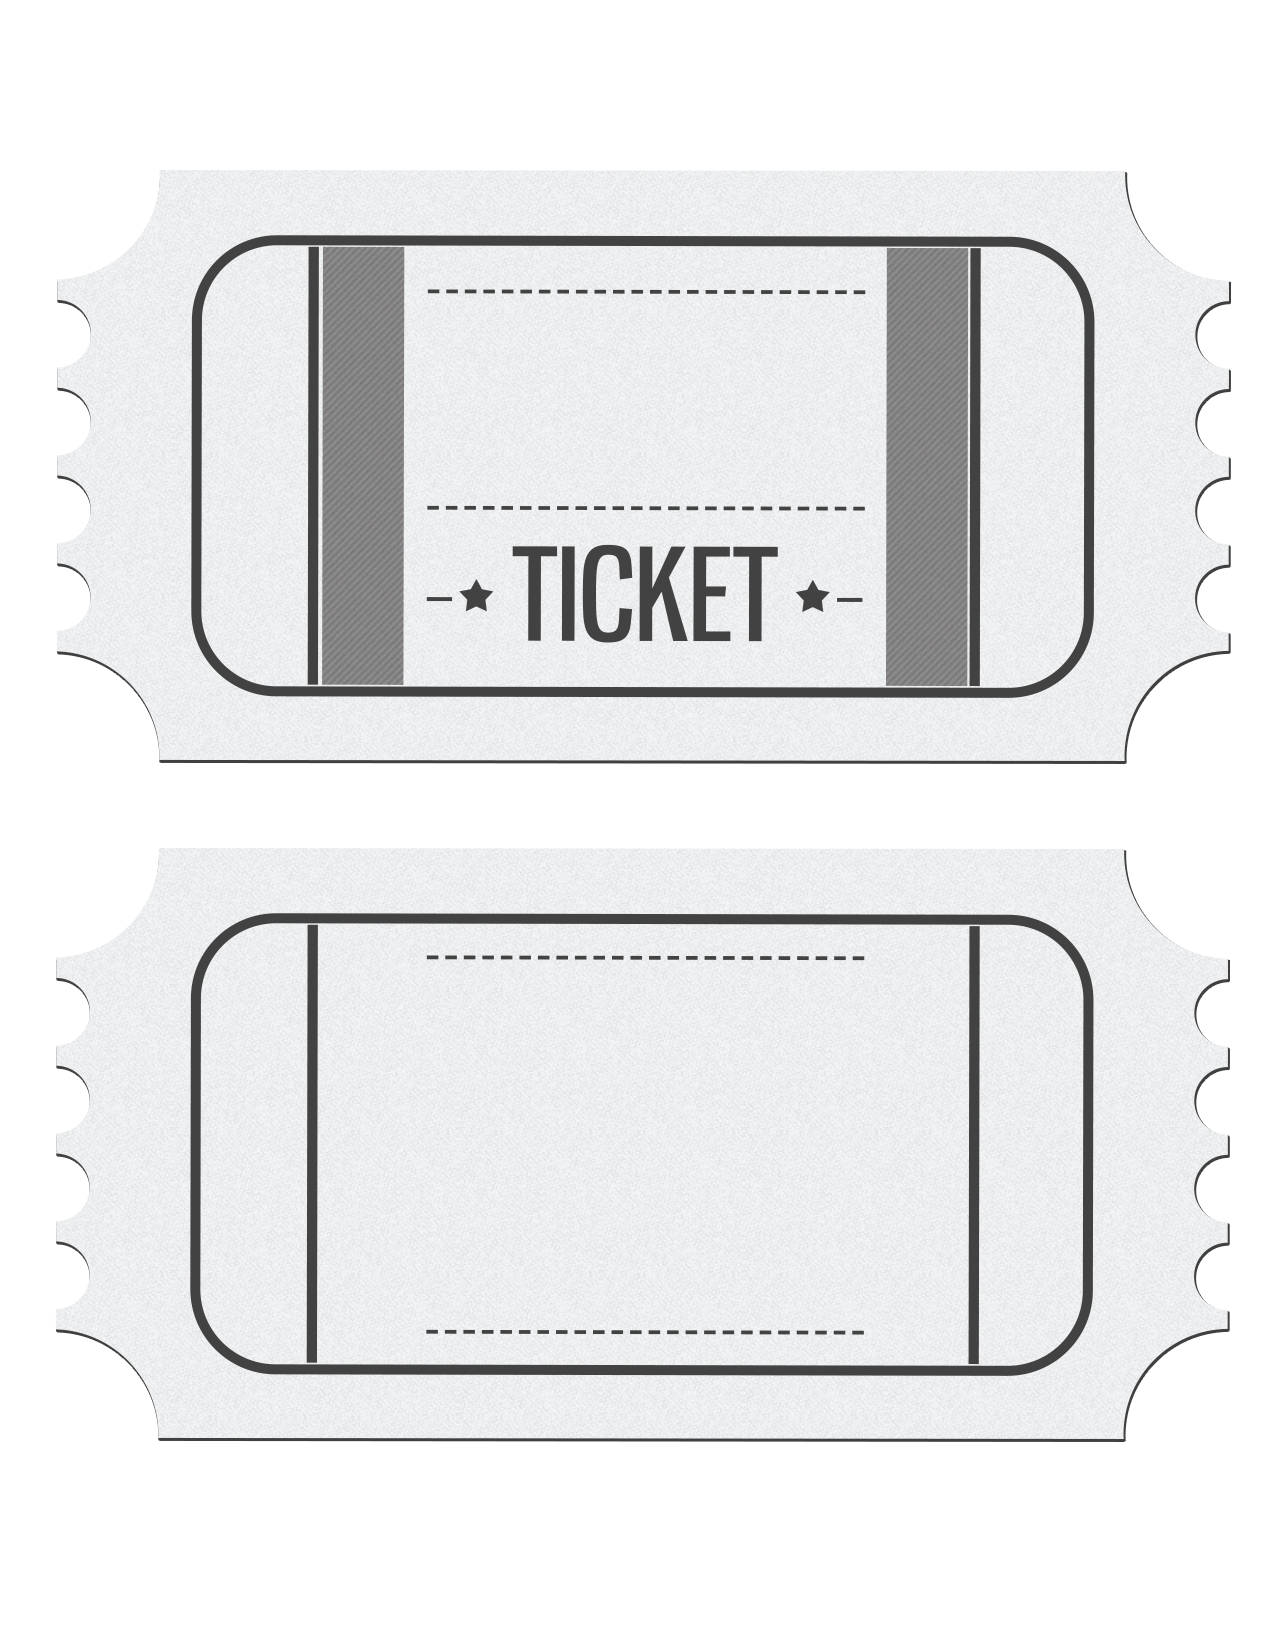 Blank Movie Ticket Free Download Clip Art.